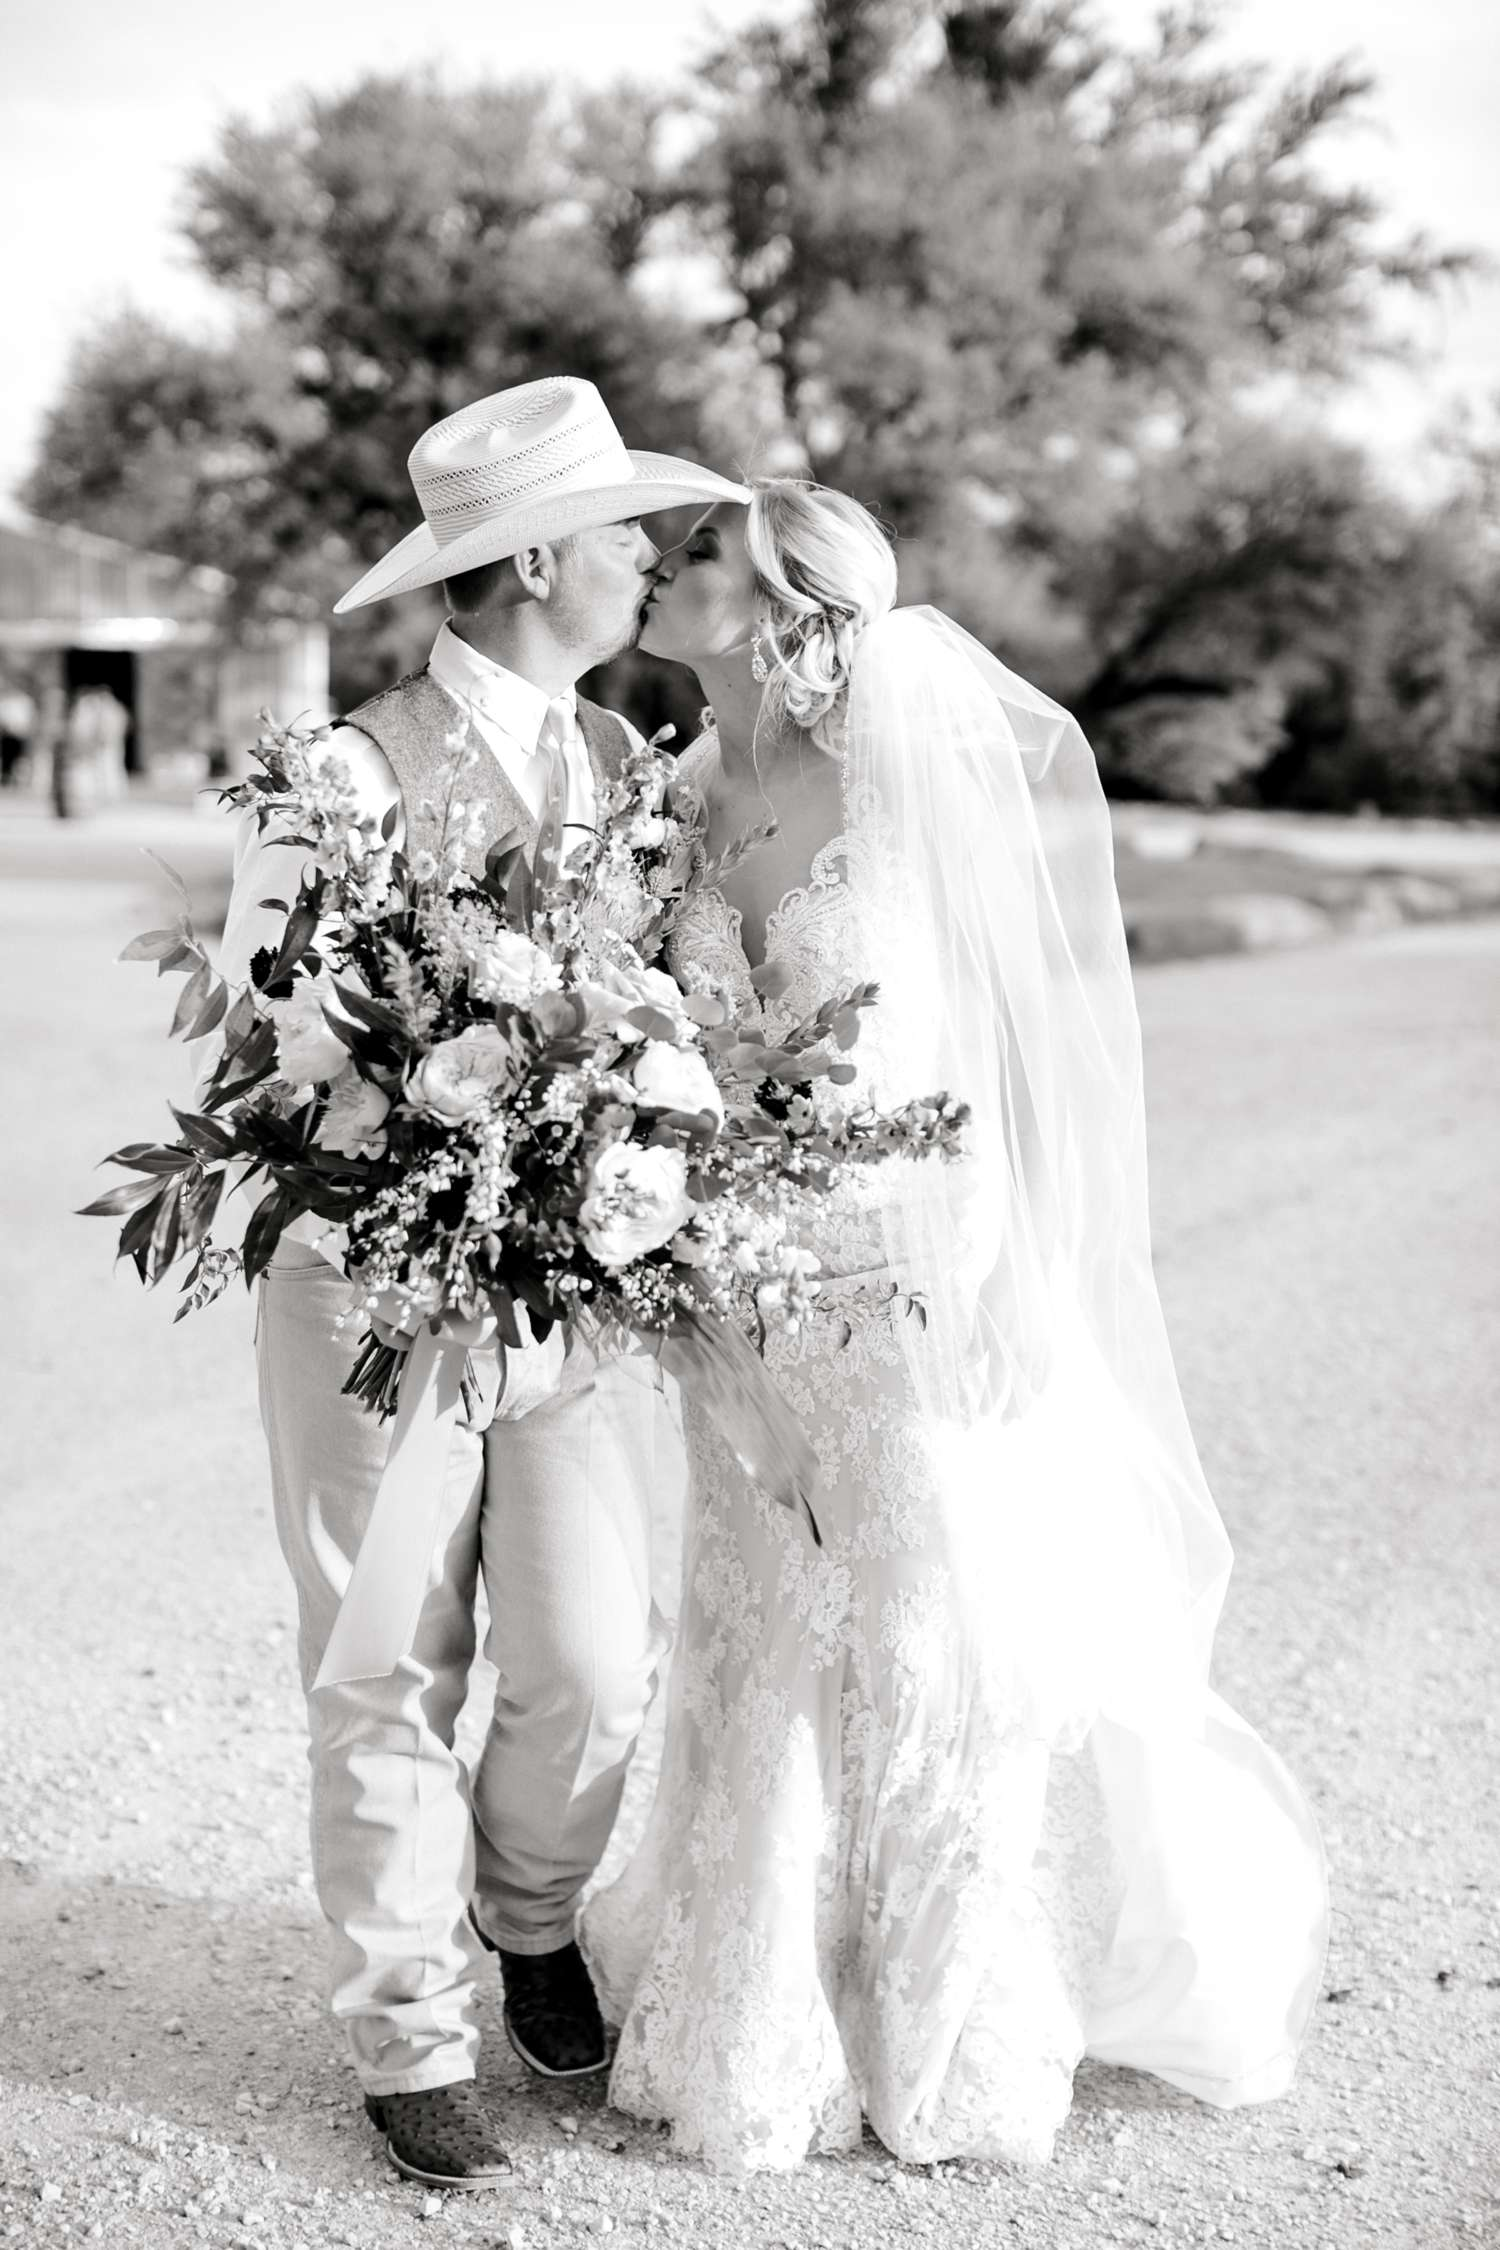 SARAH+TREVOR+BADGETT+SPARROW+CREEK+GRAHAM+TEXAS+ALLEEJ+WEDDINGS_0104.jpg